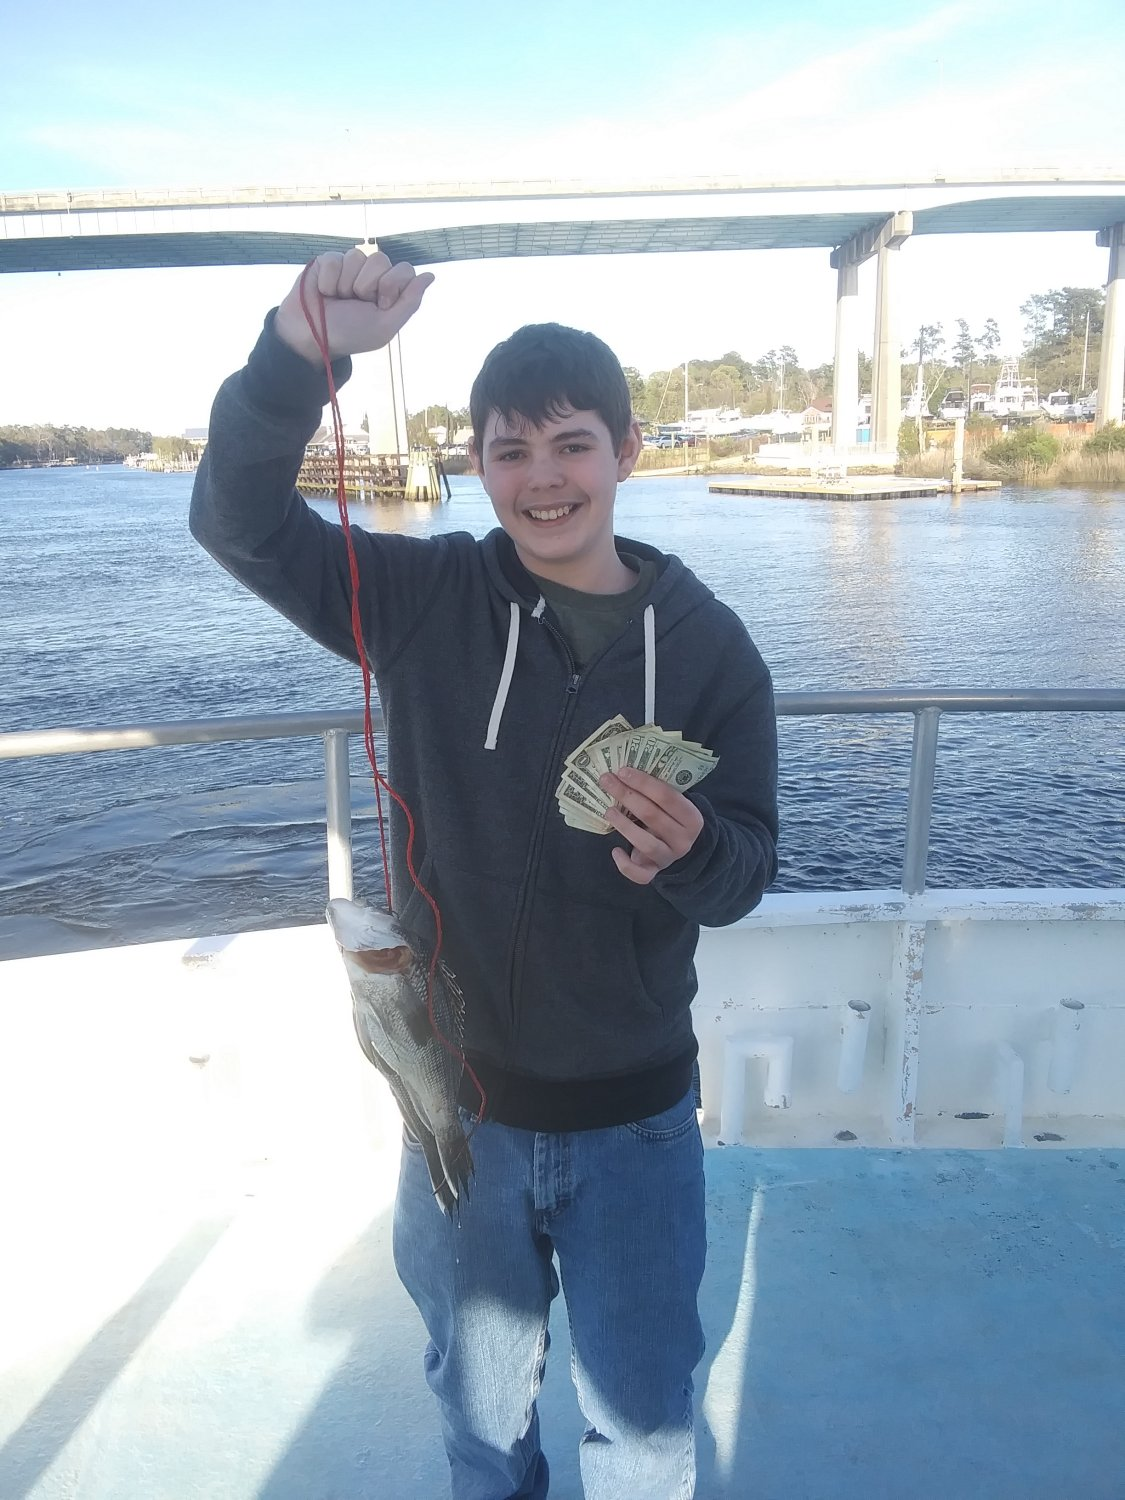 Jacob-H-from-Indiana-Fish-Pool-Winner-March-2019